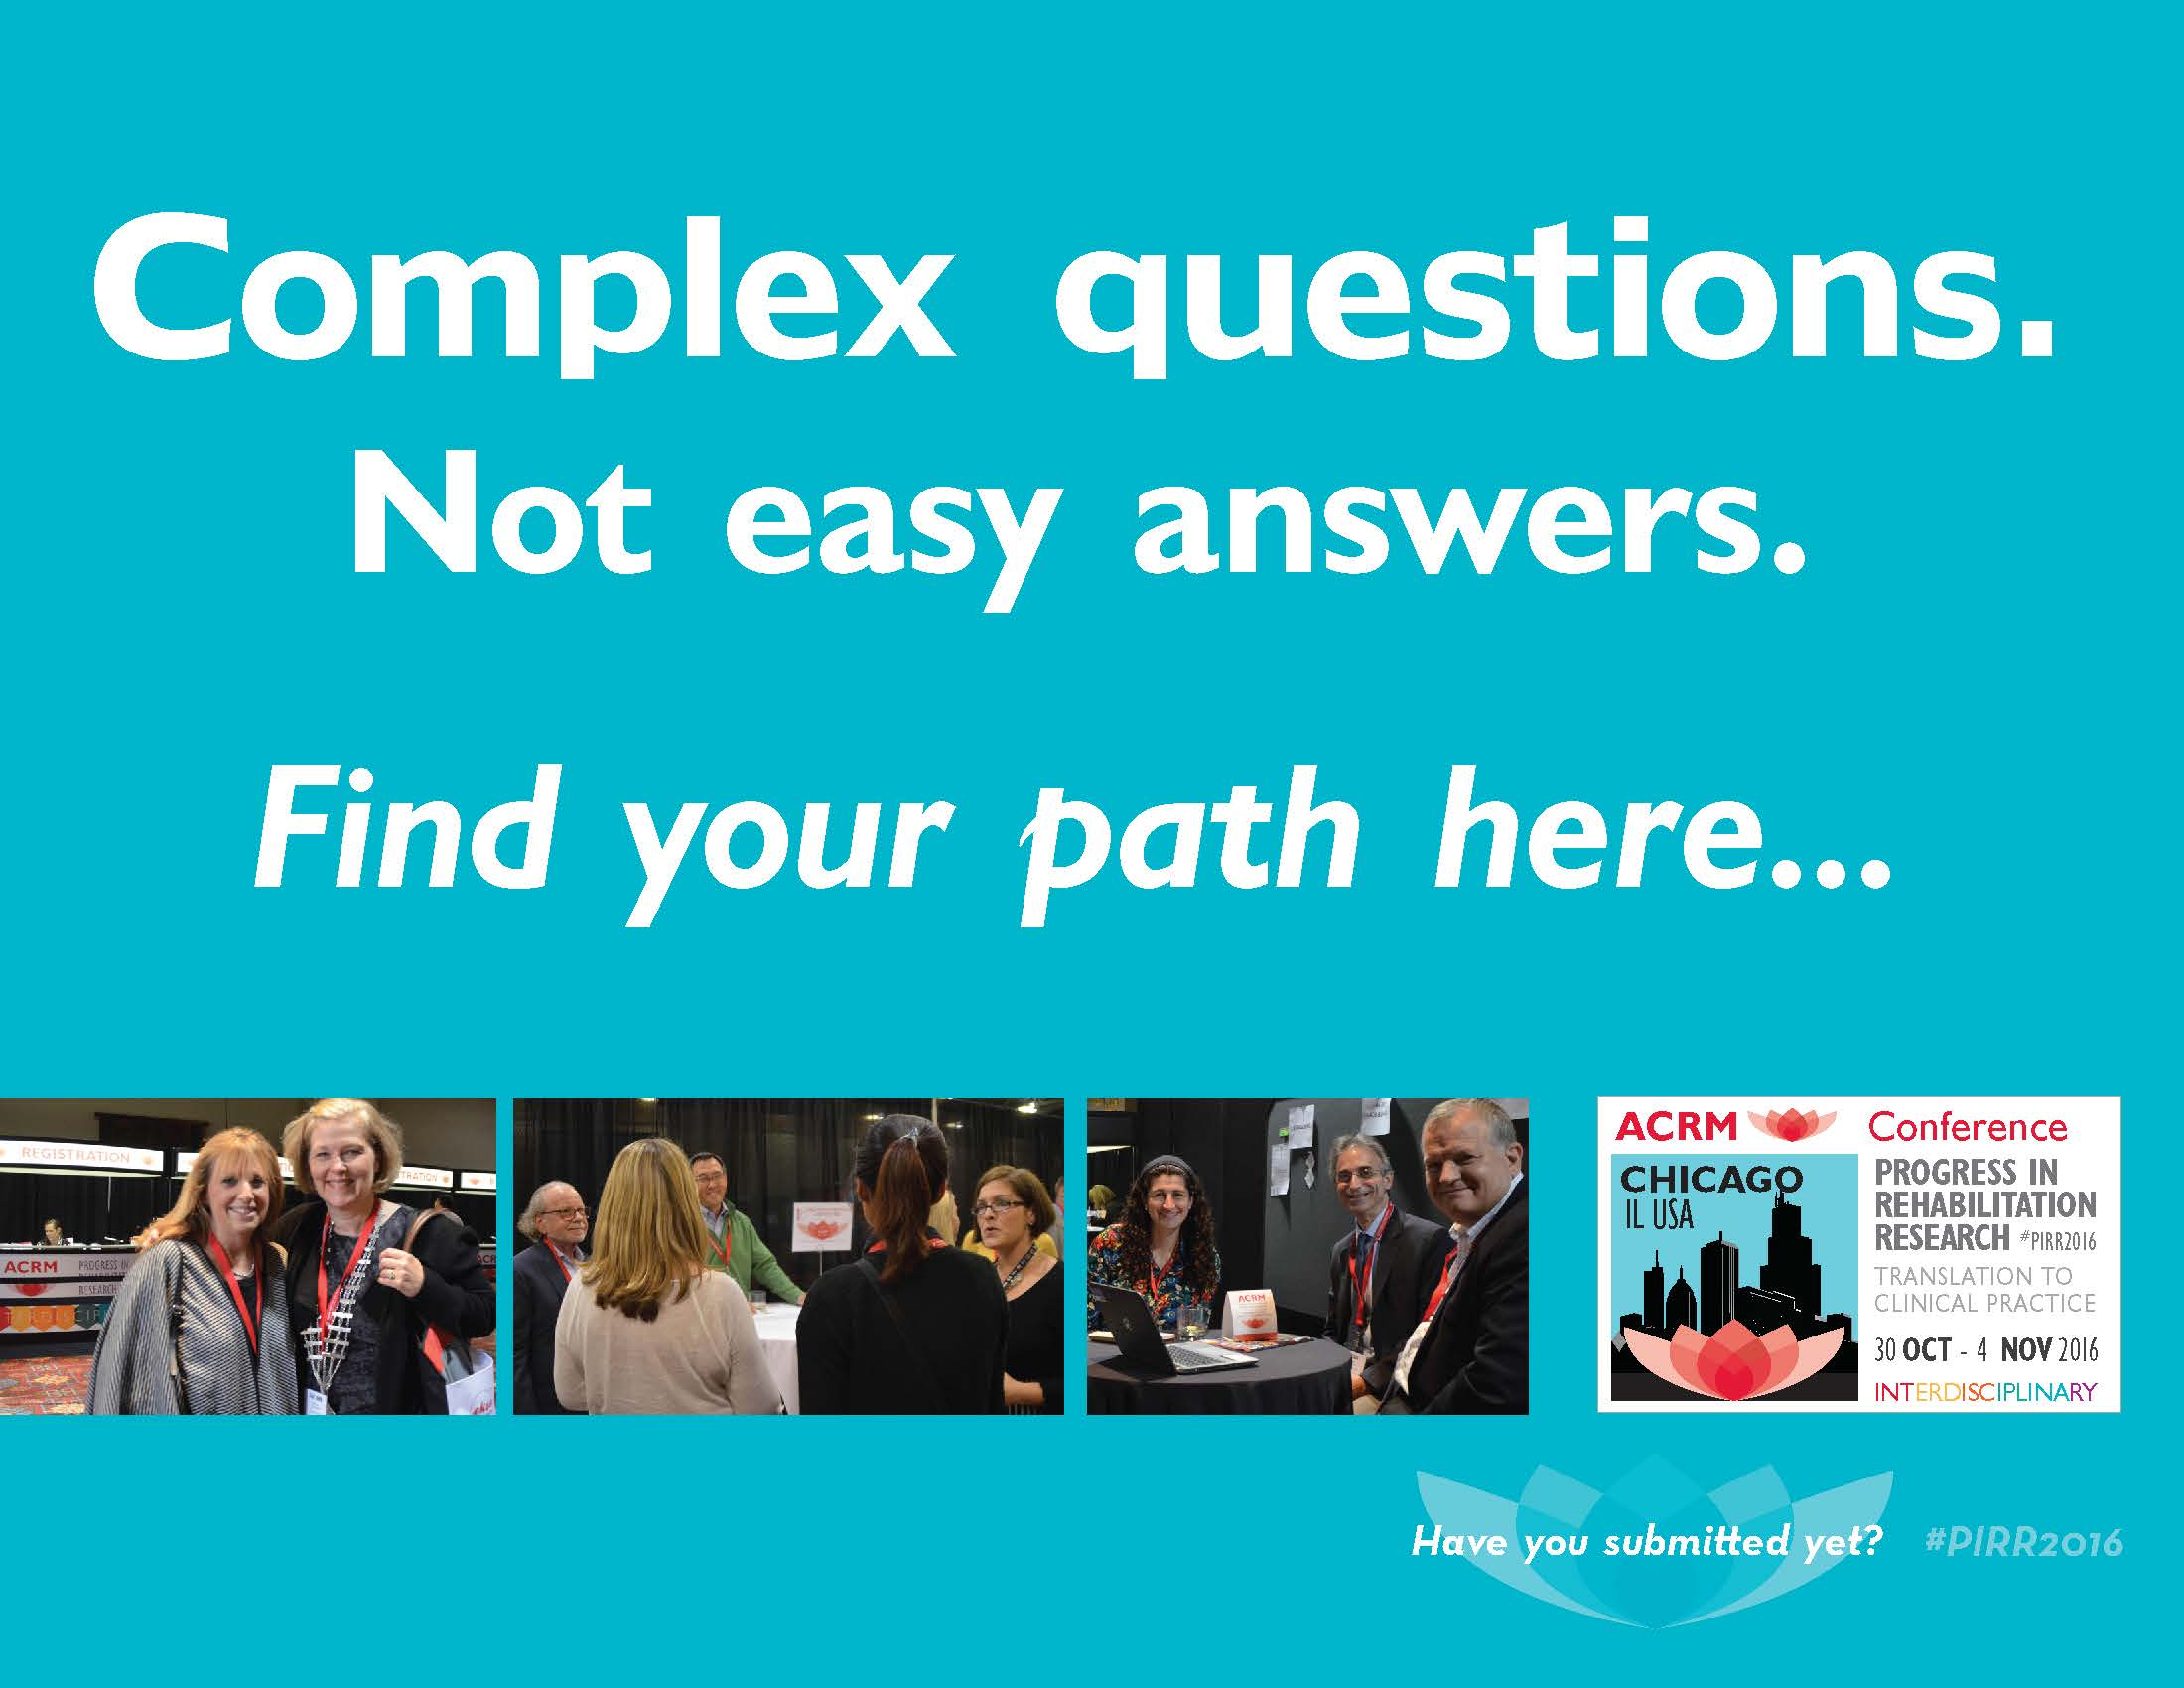 Complex questions. Not easy answers. Find your path here...